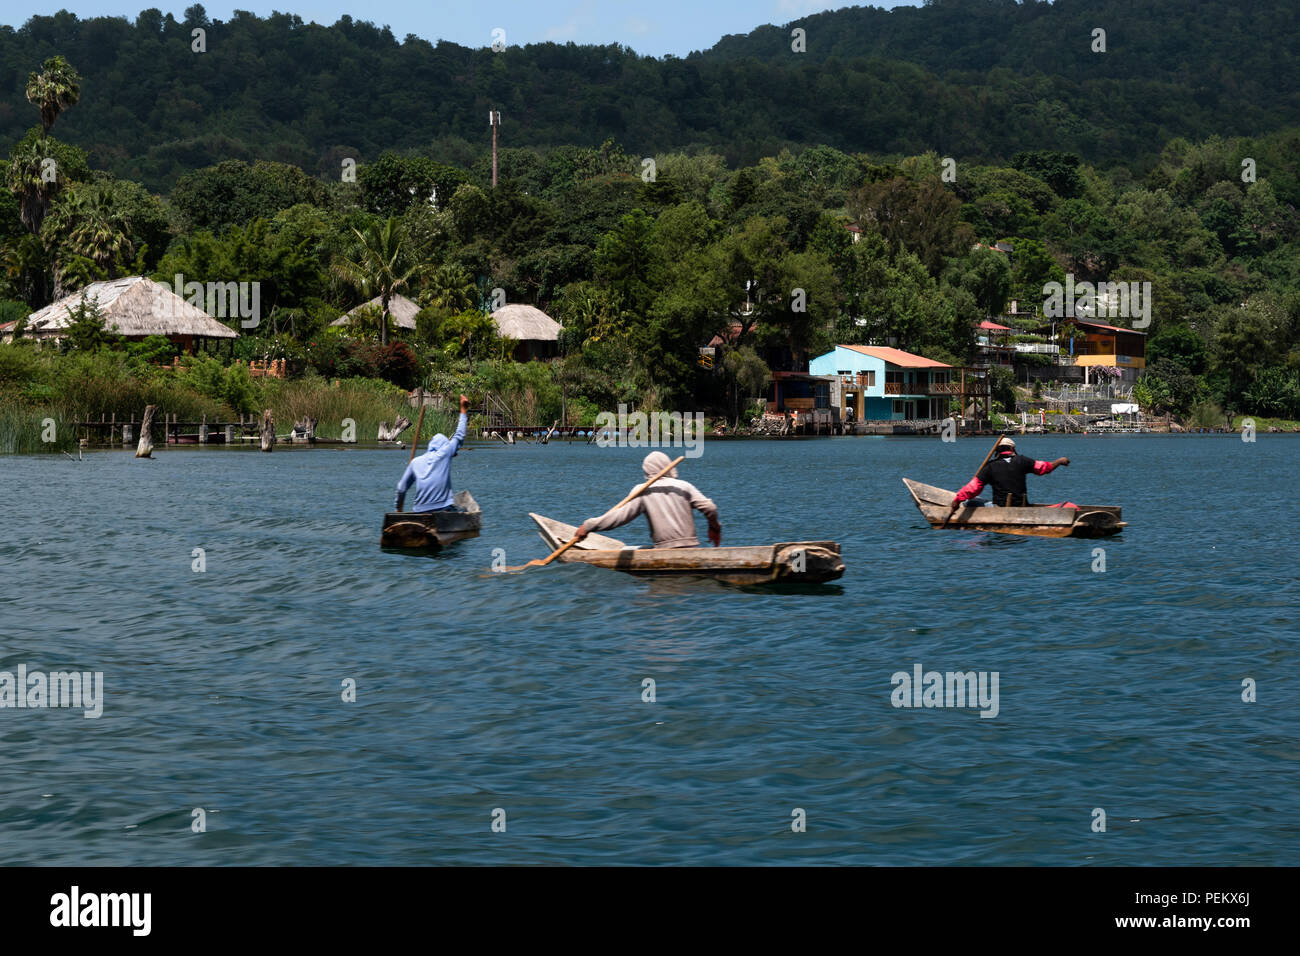 Citizens of near by towns living as they normally do in Lake Atitlan, Solola, Guatemala. 14 July 2018 - Stock Image